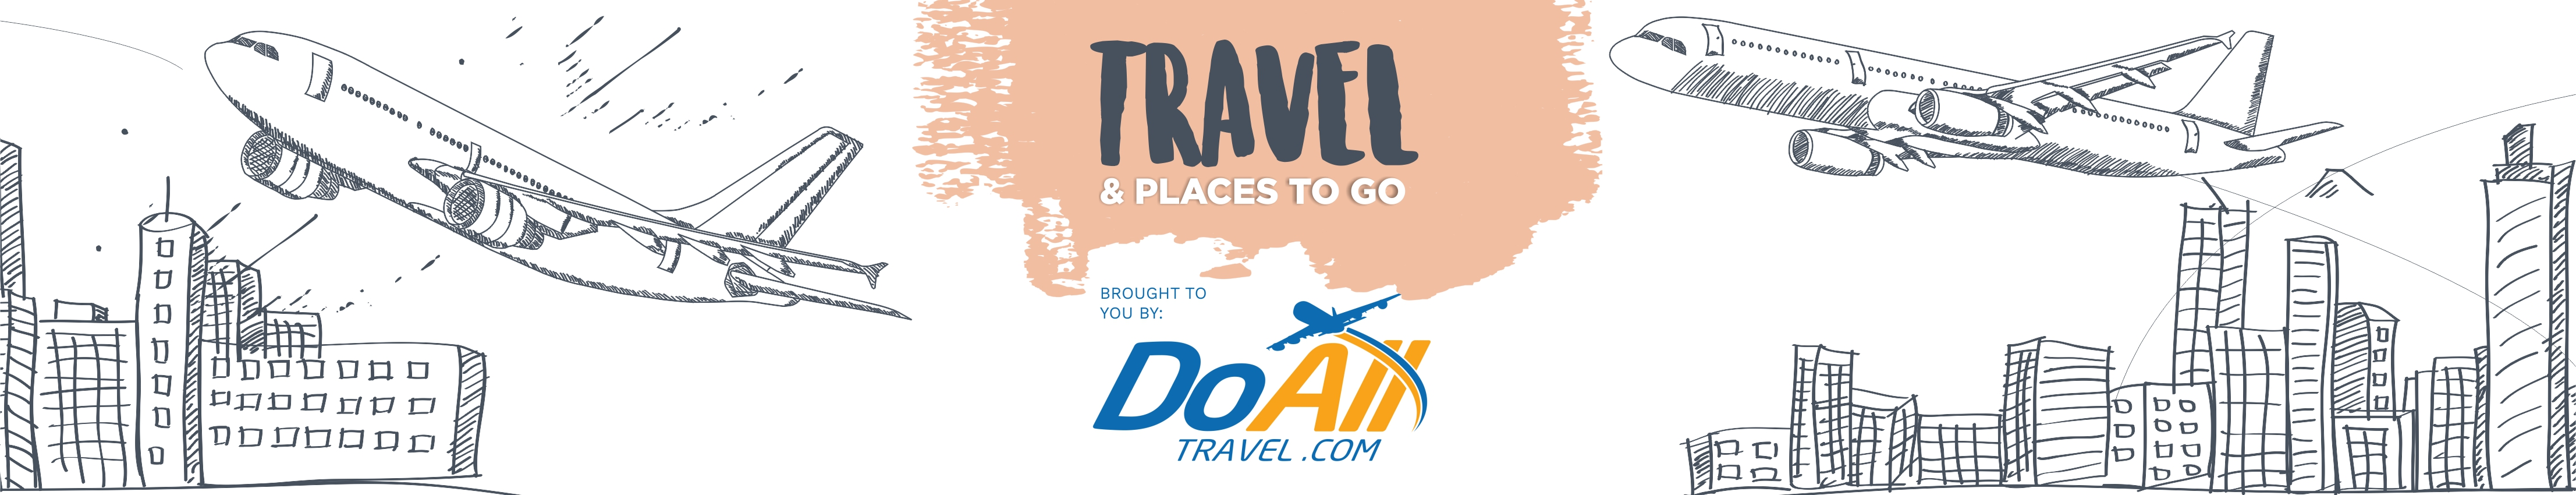 do-all-travel-1